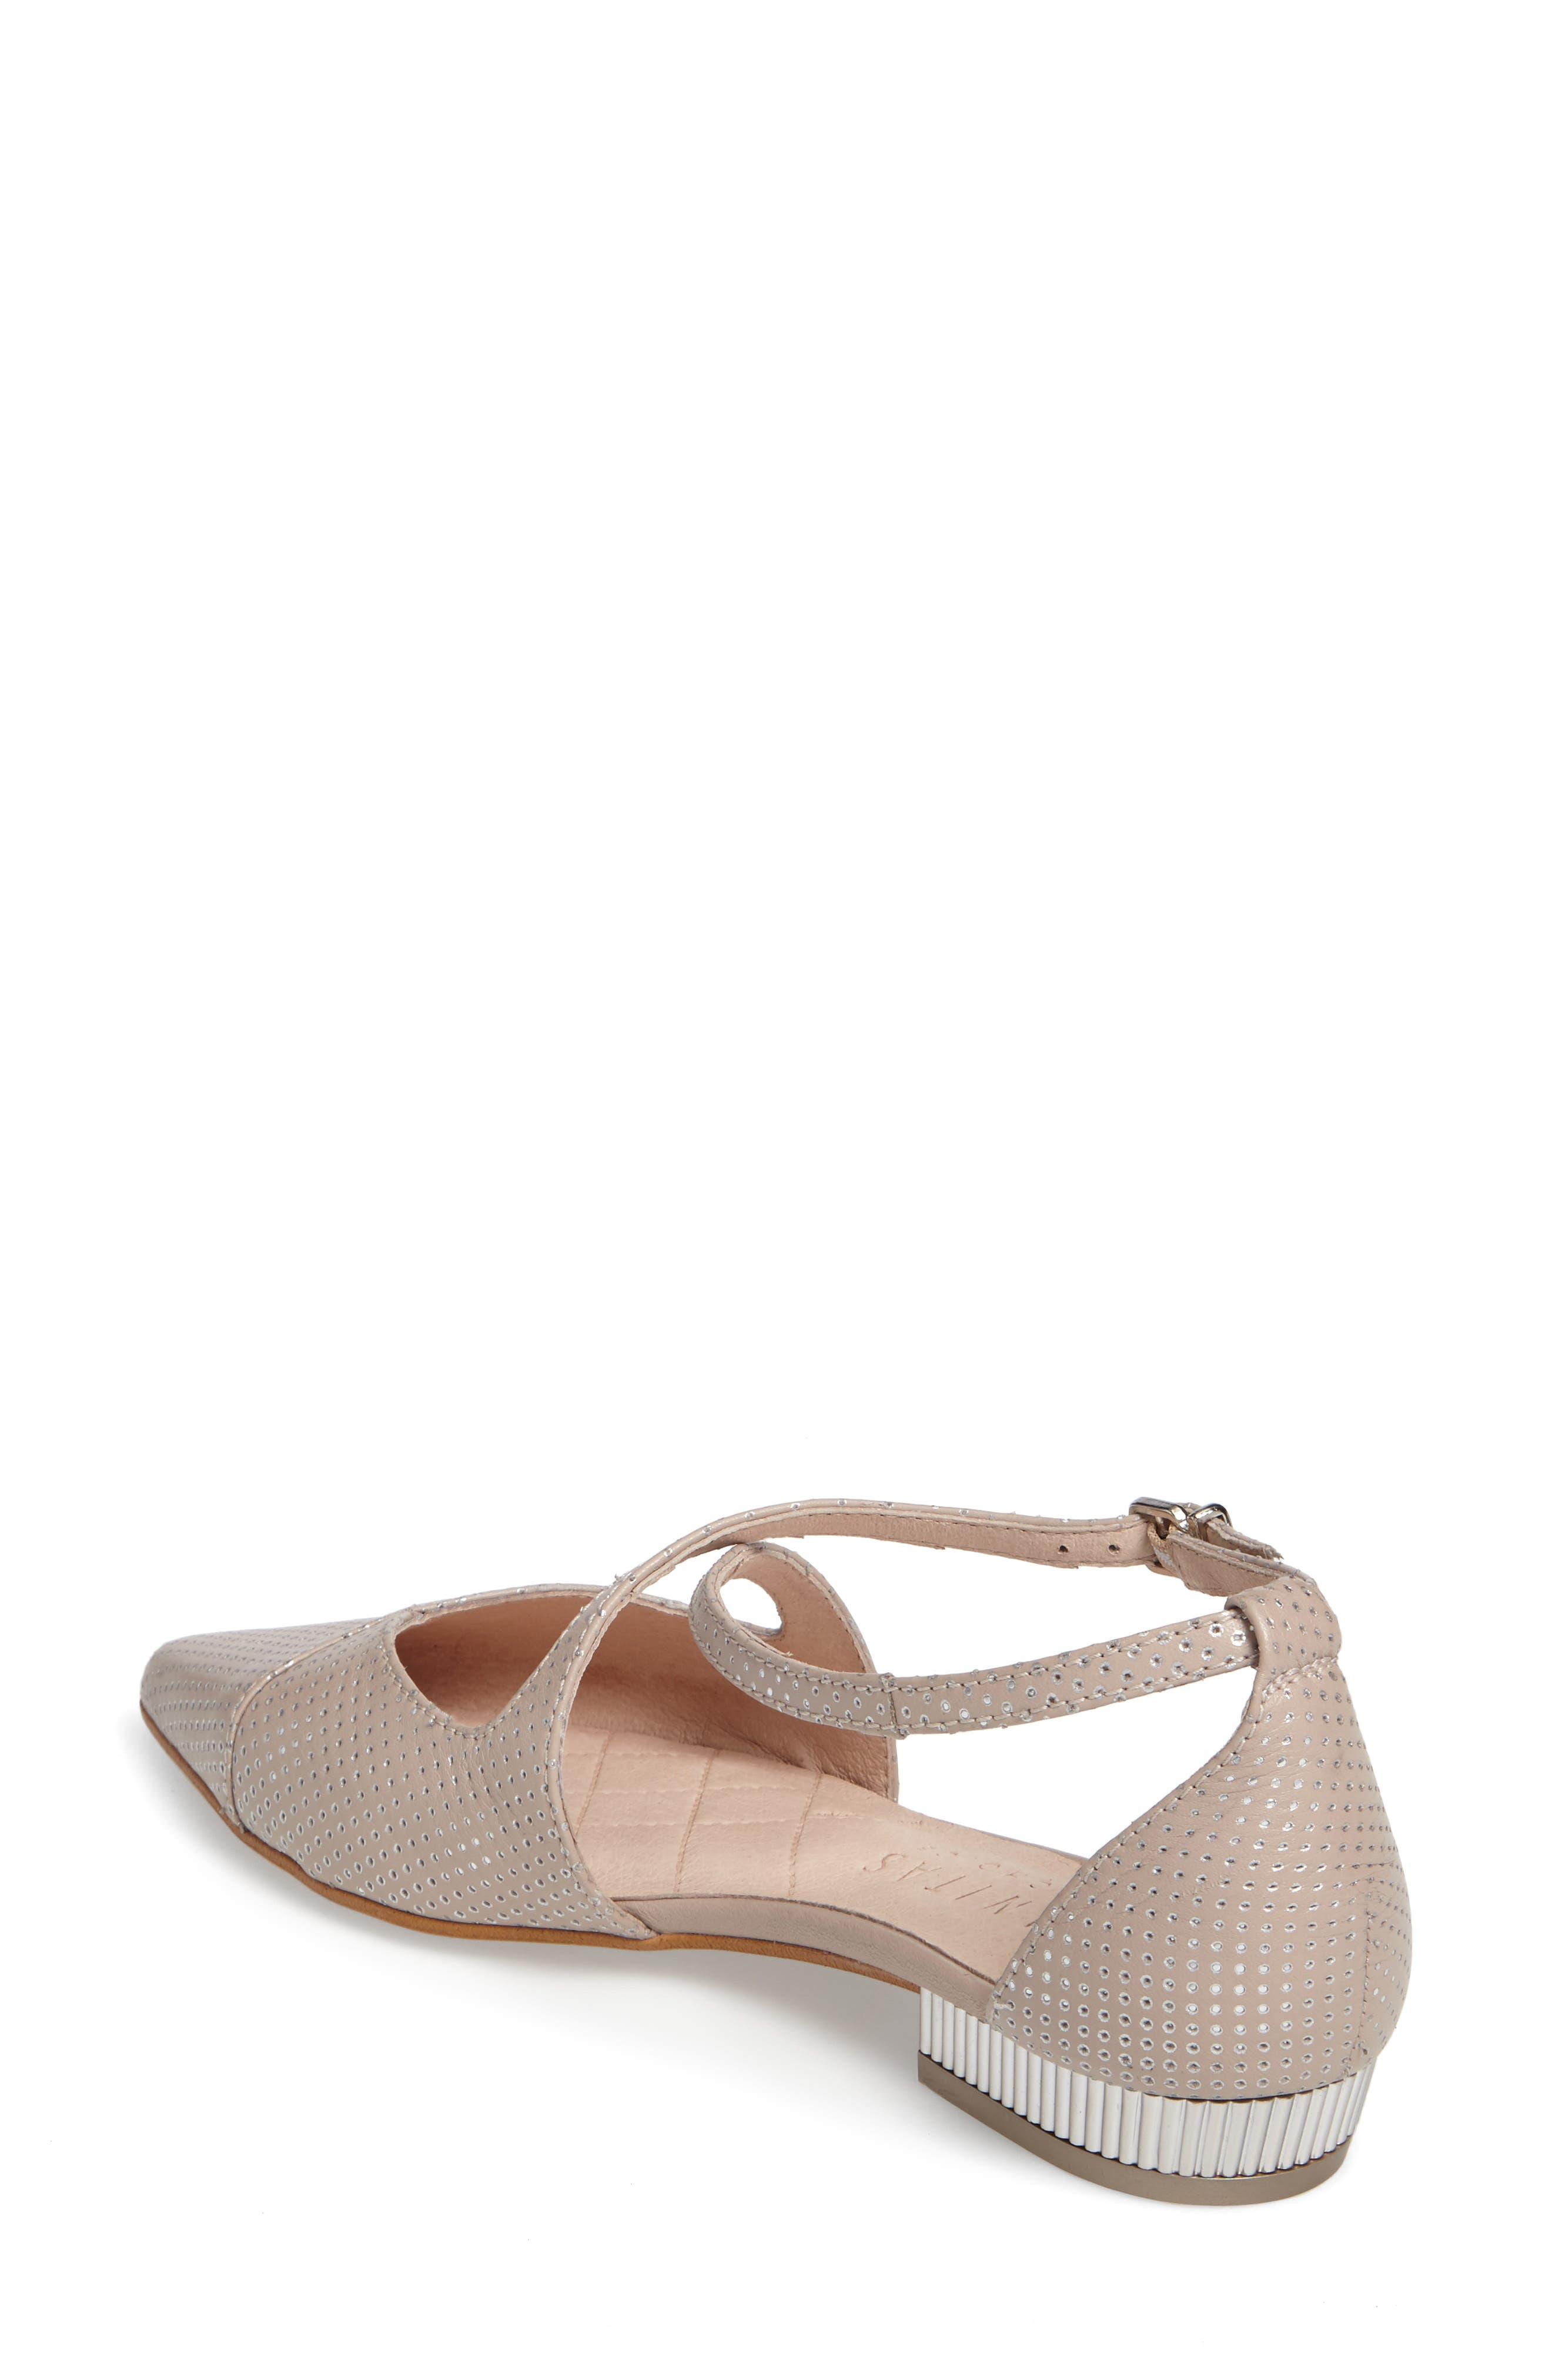 April Perforated Pointy Toe Flat,                             Alternate thumbnail 2, color,                             Nougat Leather